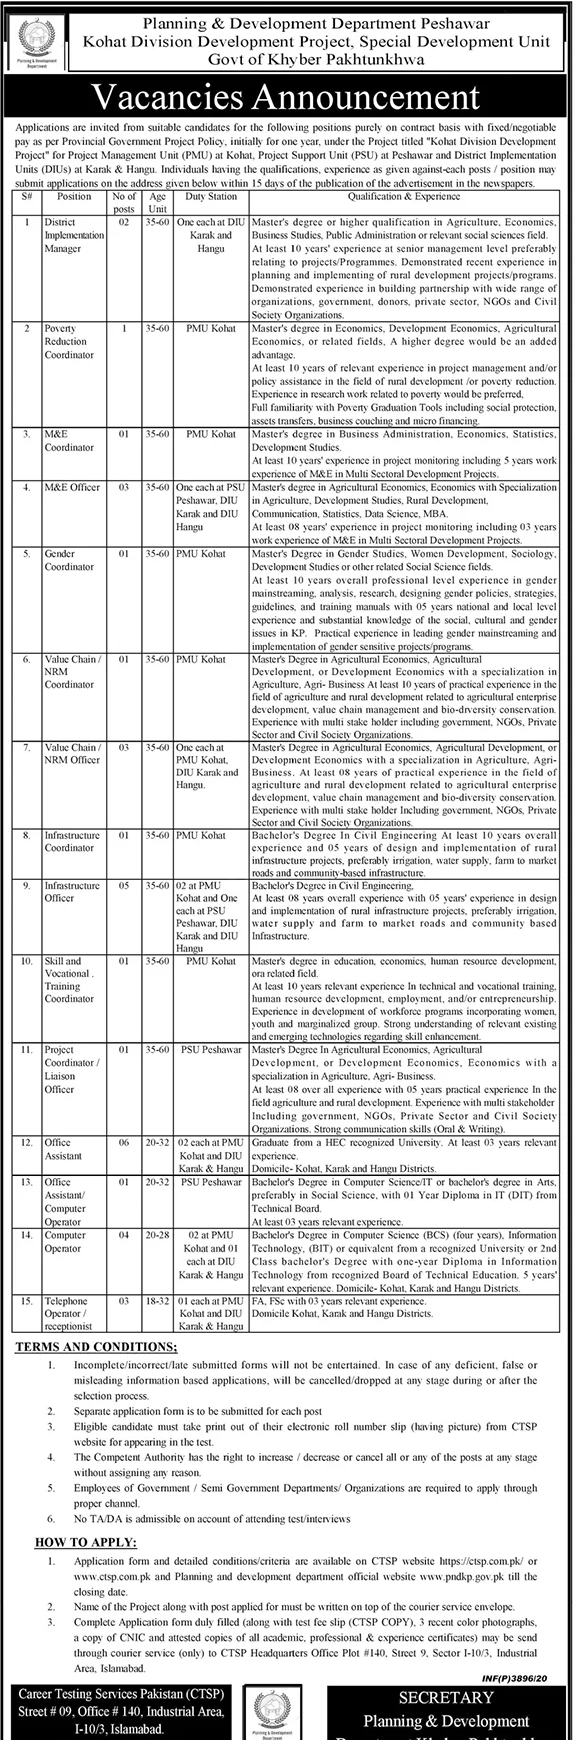 BA Pass jobs For Office Assistant in Planning & Development Department Peshawar Government of KPK in Islamabad for DIU Karak candidates -2020